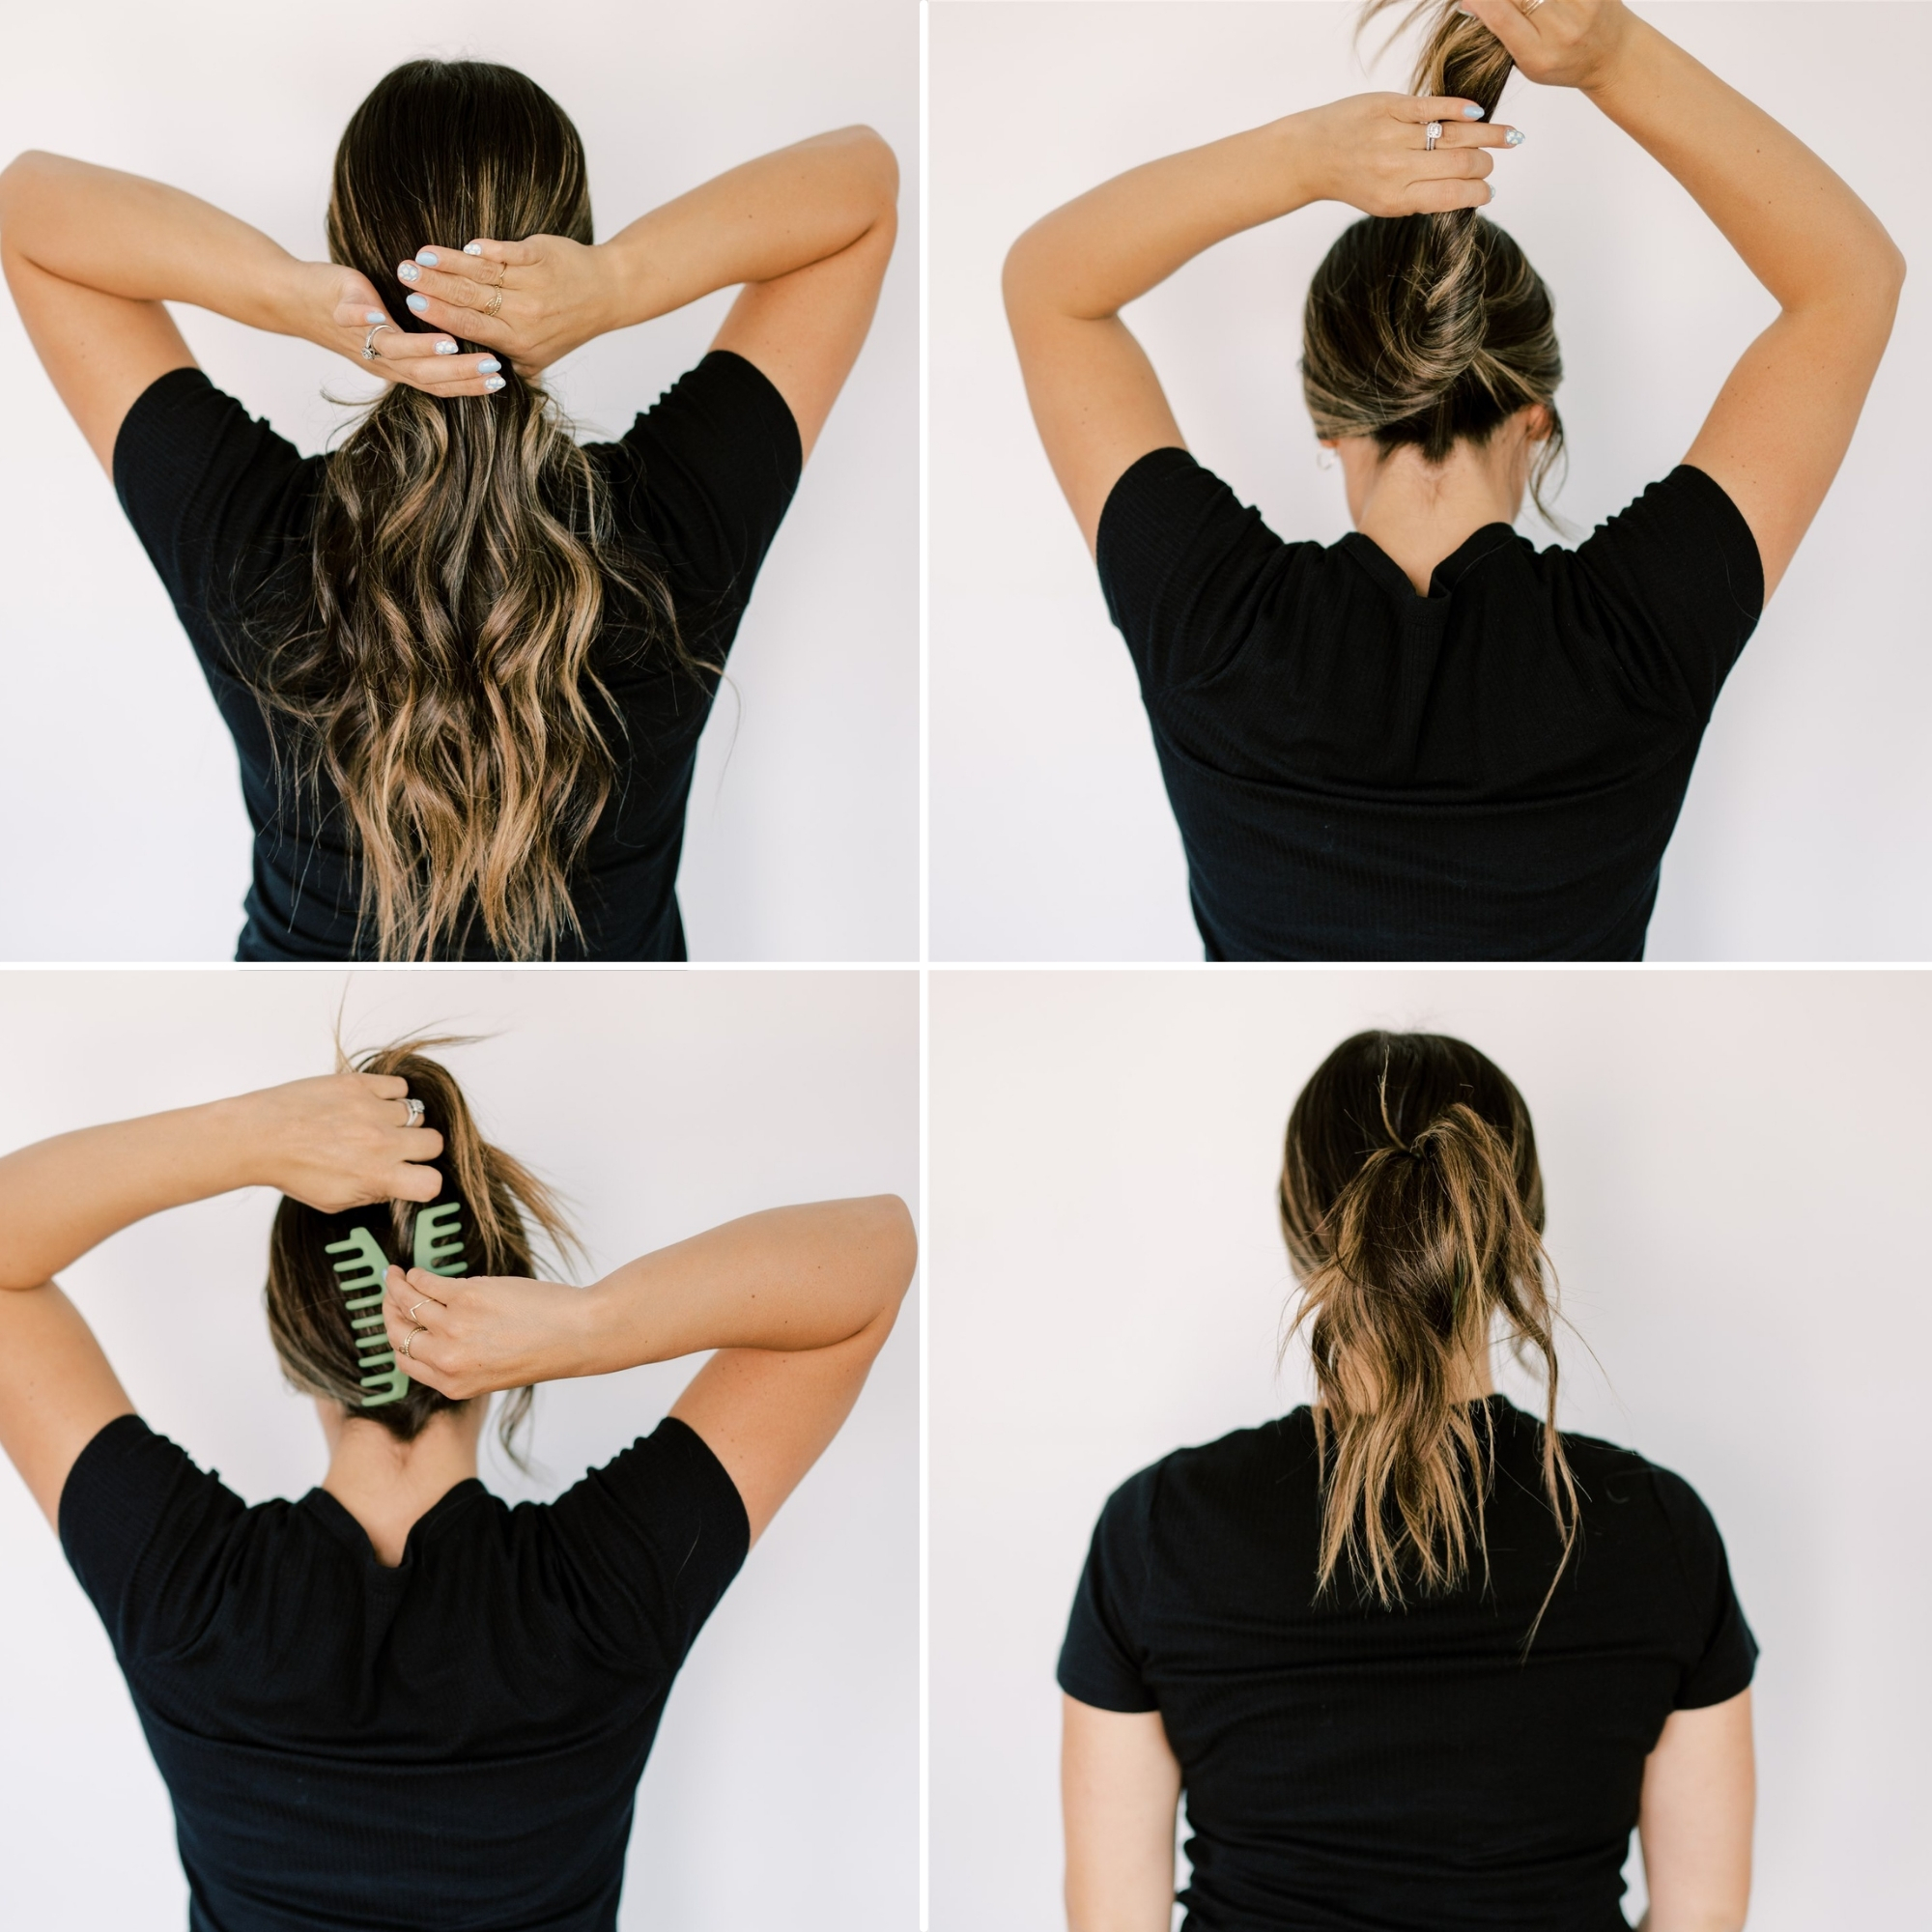 try this original hair style that is super trendy with a claw clip. www.twistmepretty.com